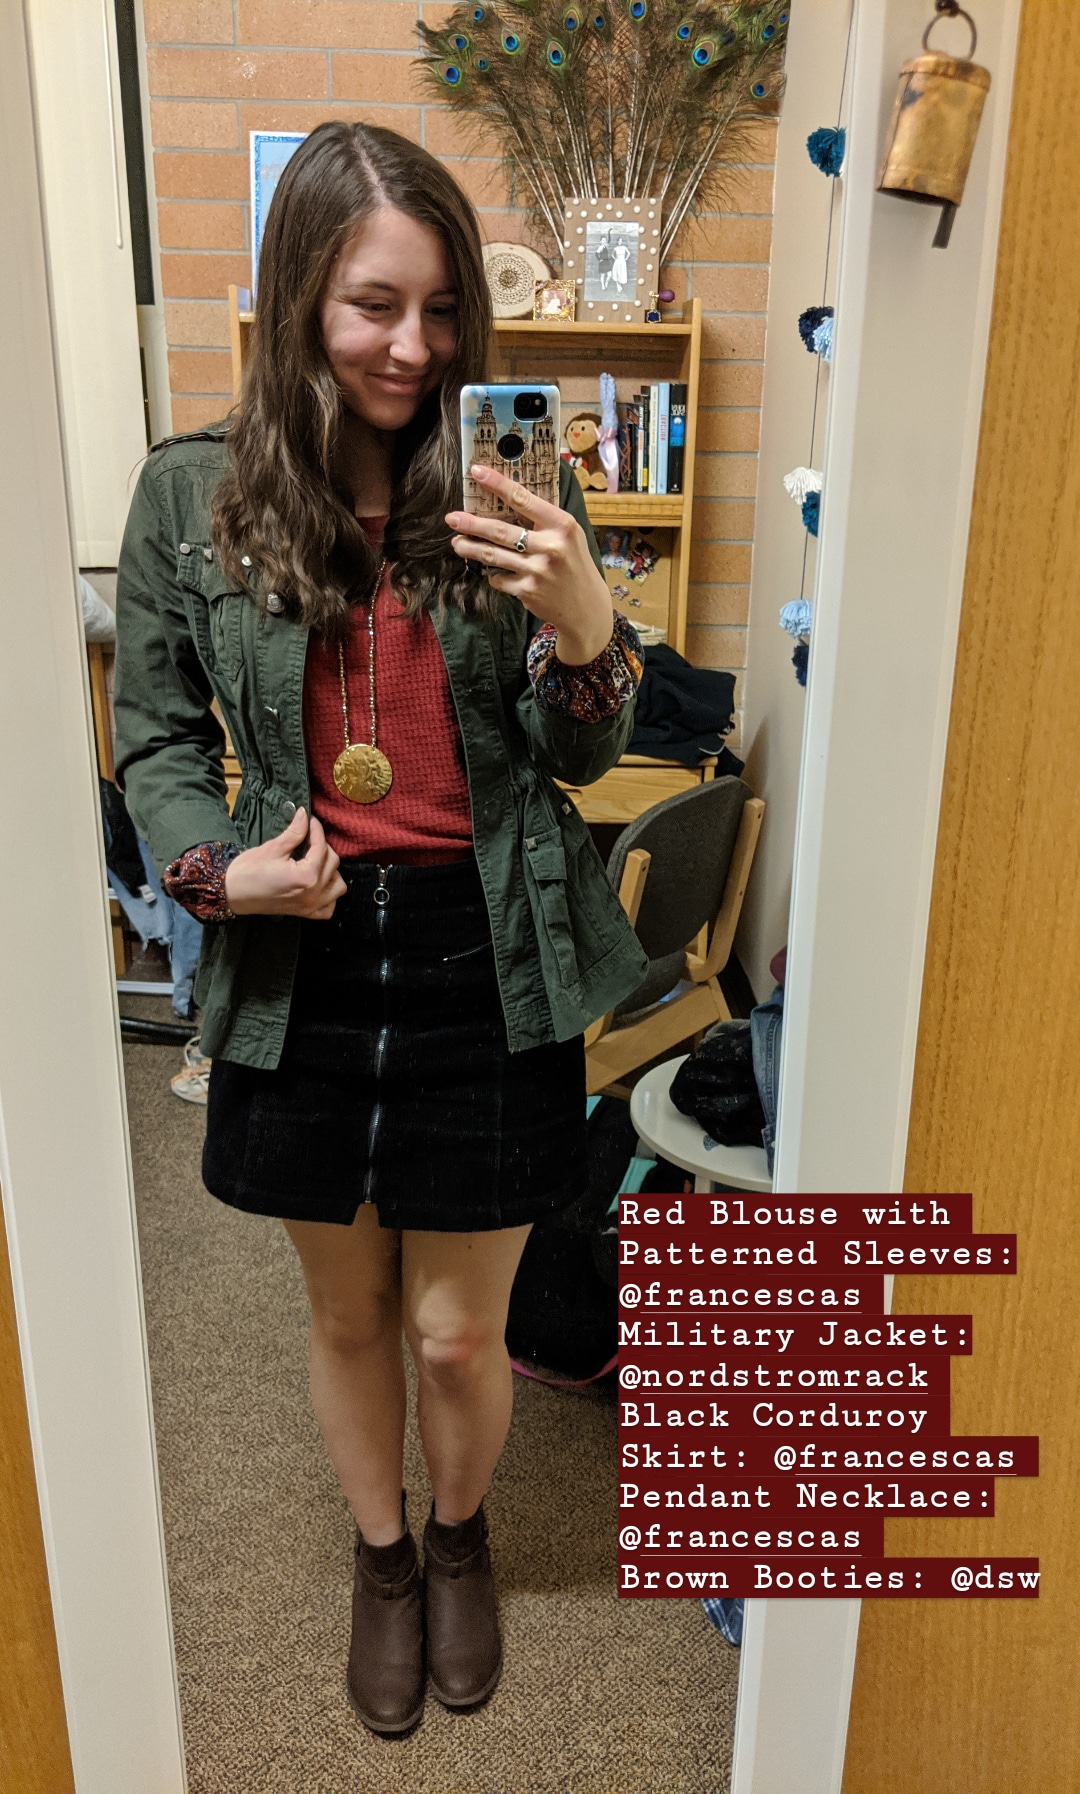 red blouse, military jacket, black corduroy skirt